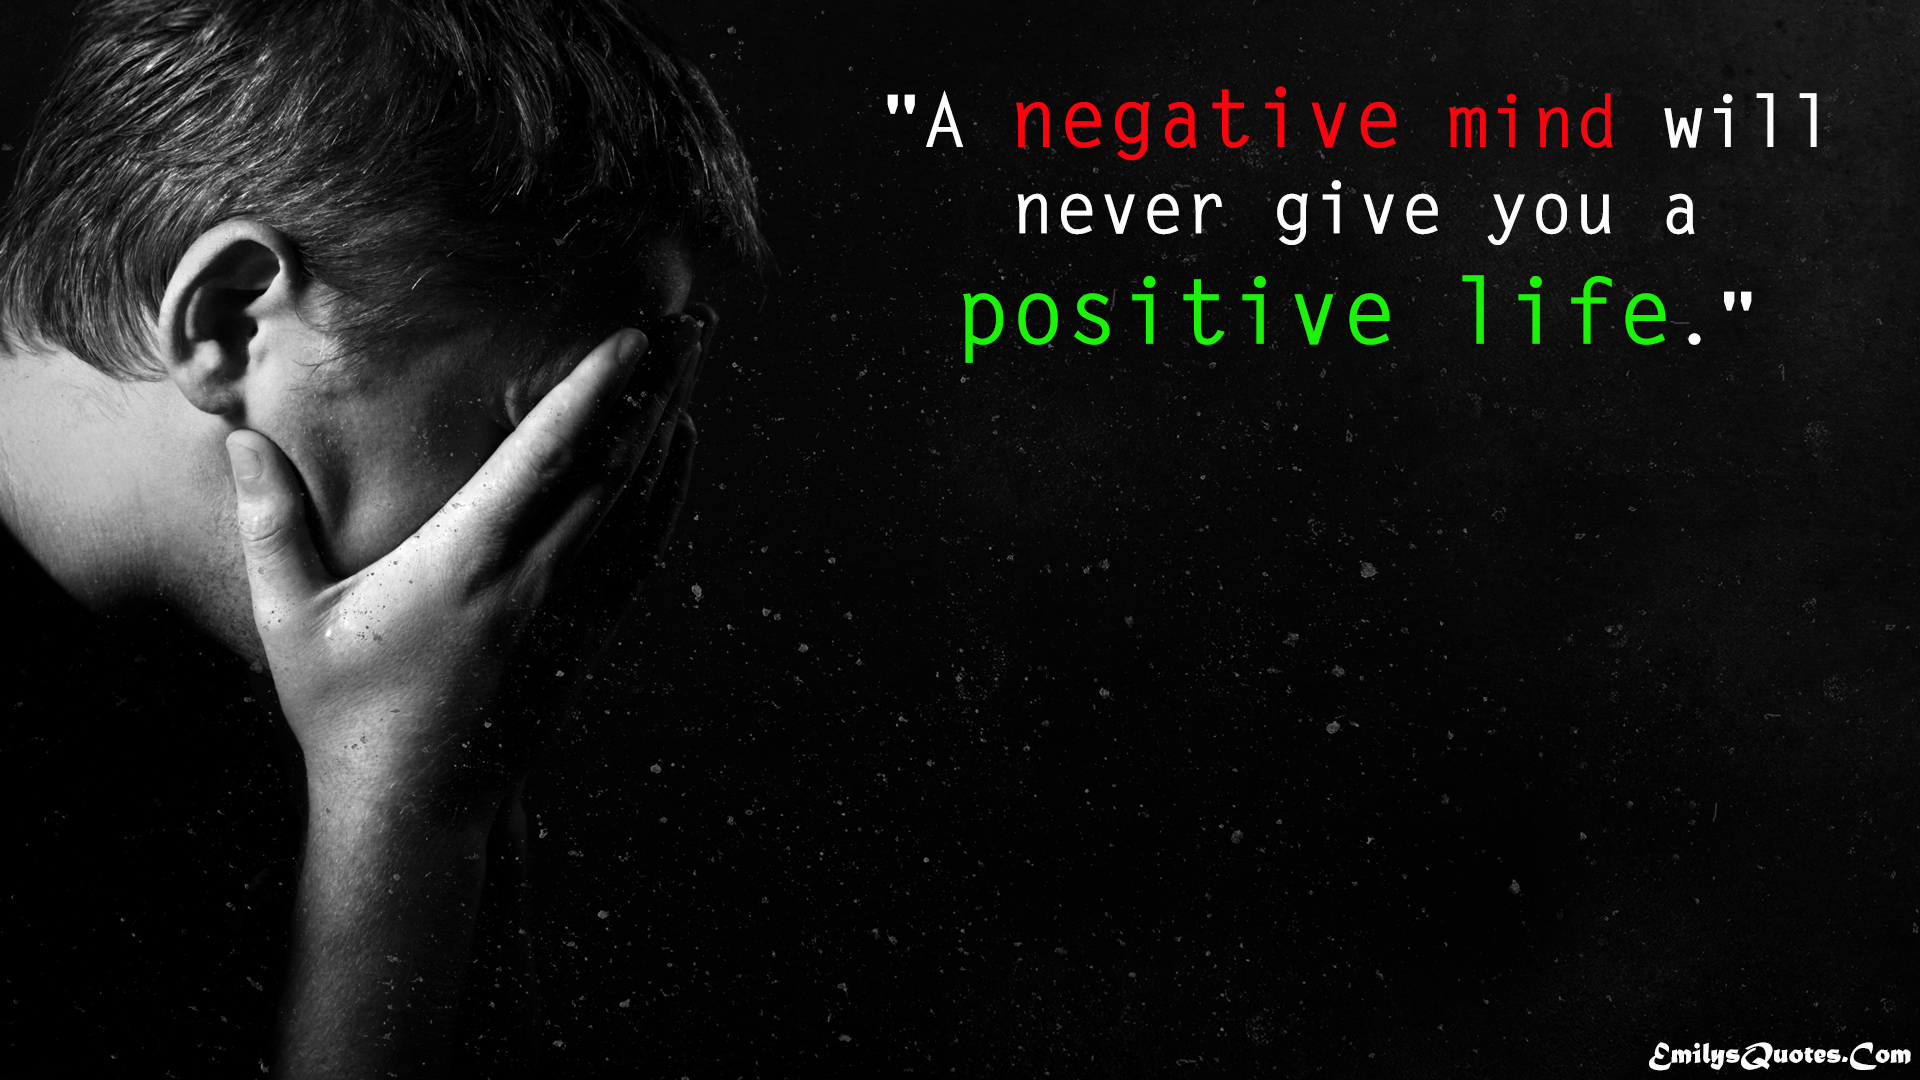 Life Changing Inspirational Quotes A Negative Mind Will Never Give You A Positive Life  Popular